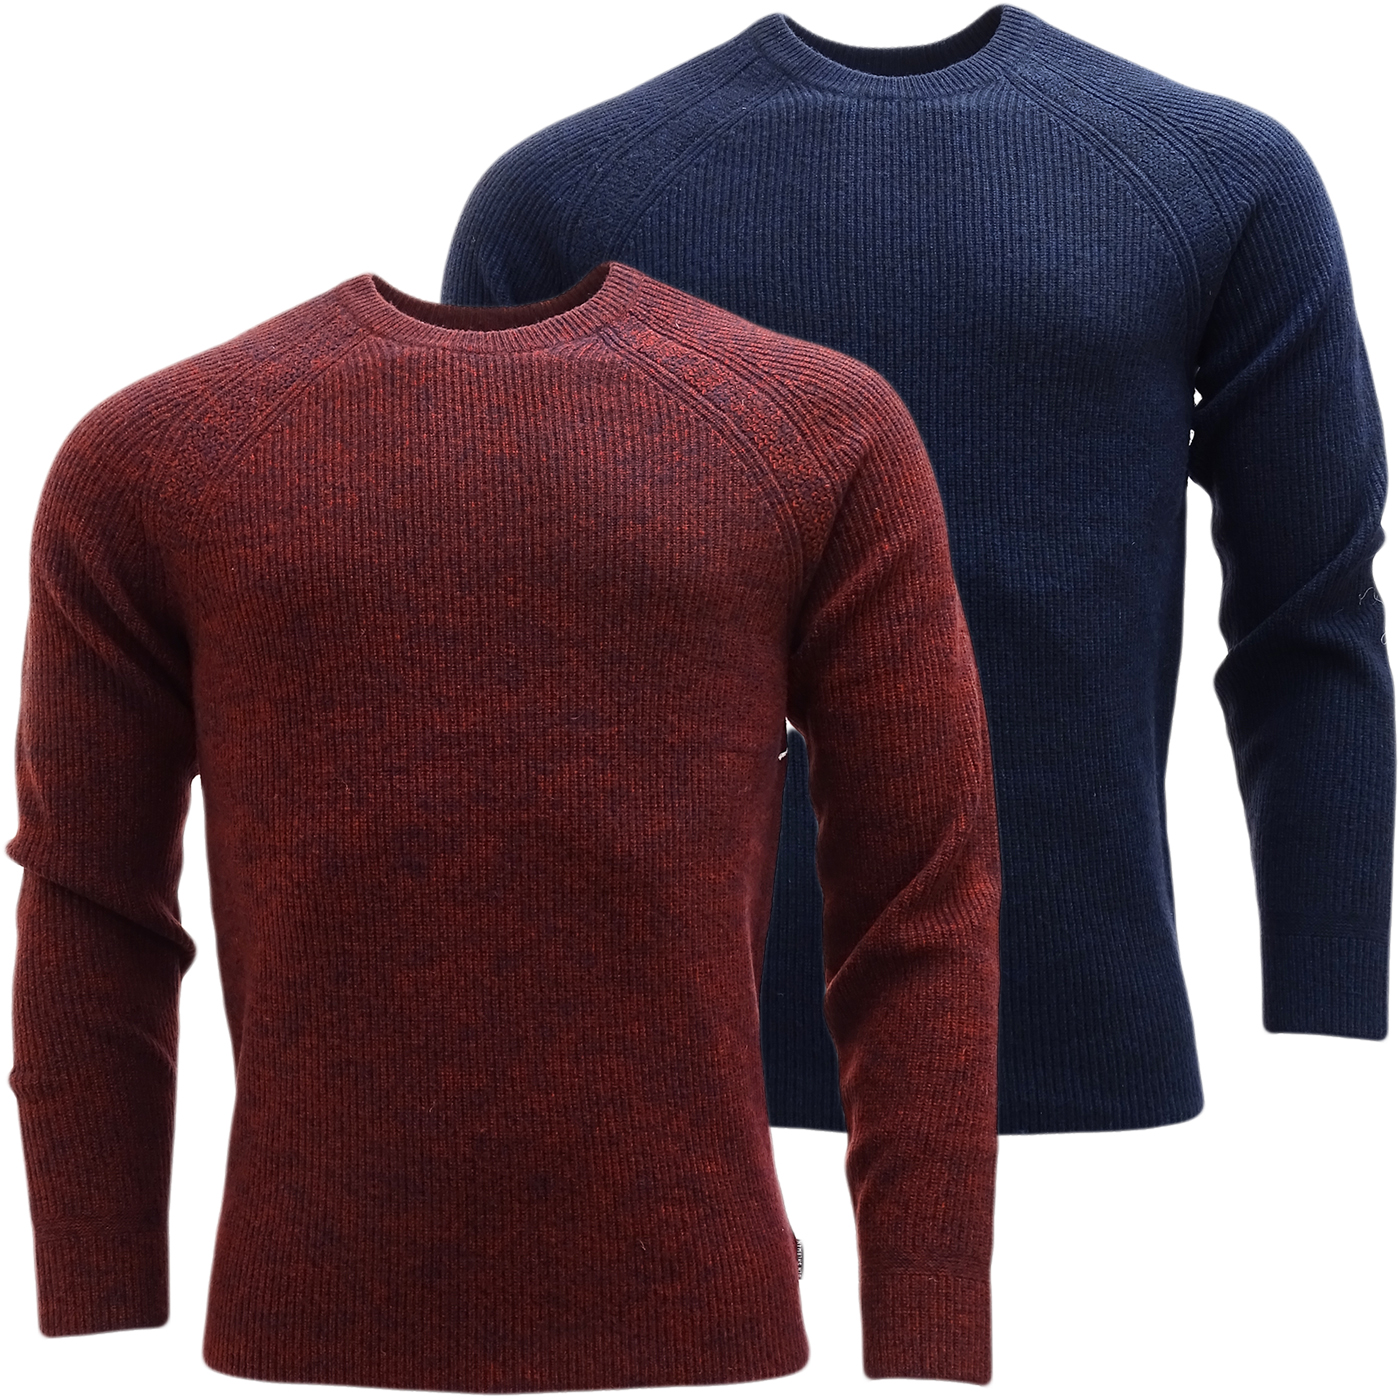 Ben Sherman Ribbed Lambswool Jumper - Slim Fit - ME13070